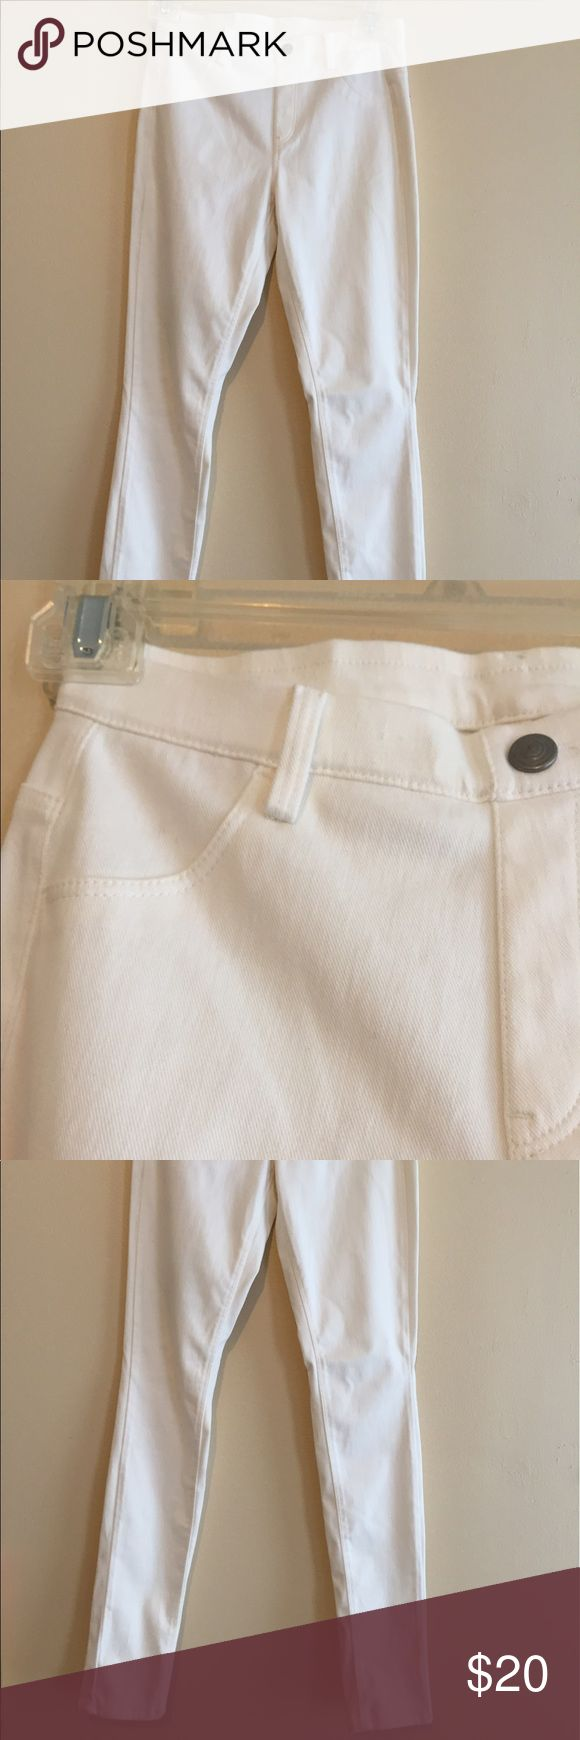 Uniqlo Legging Pants in White White jeggings from Uniqlo, XS, worn only once! Condition is like new. Only back pockets are real Uniqlo Pants